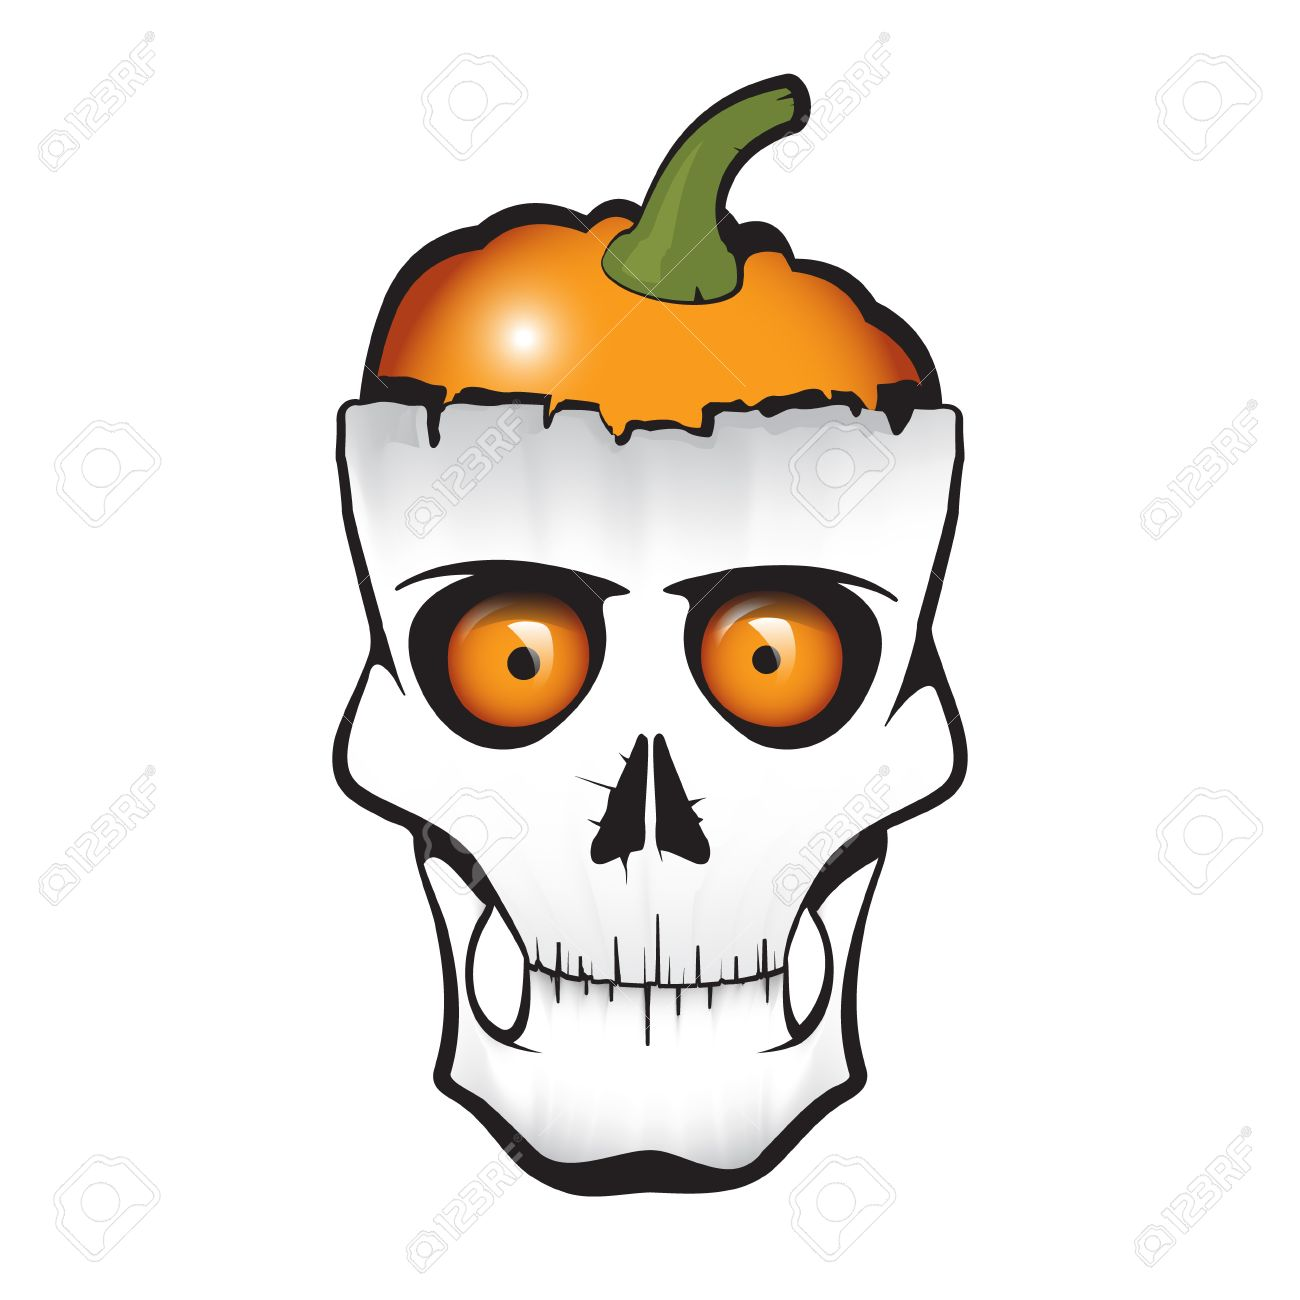 Halloween Editable Stock Photos Images. Royalty Free Halloween.